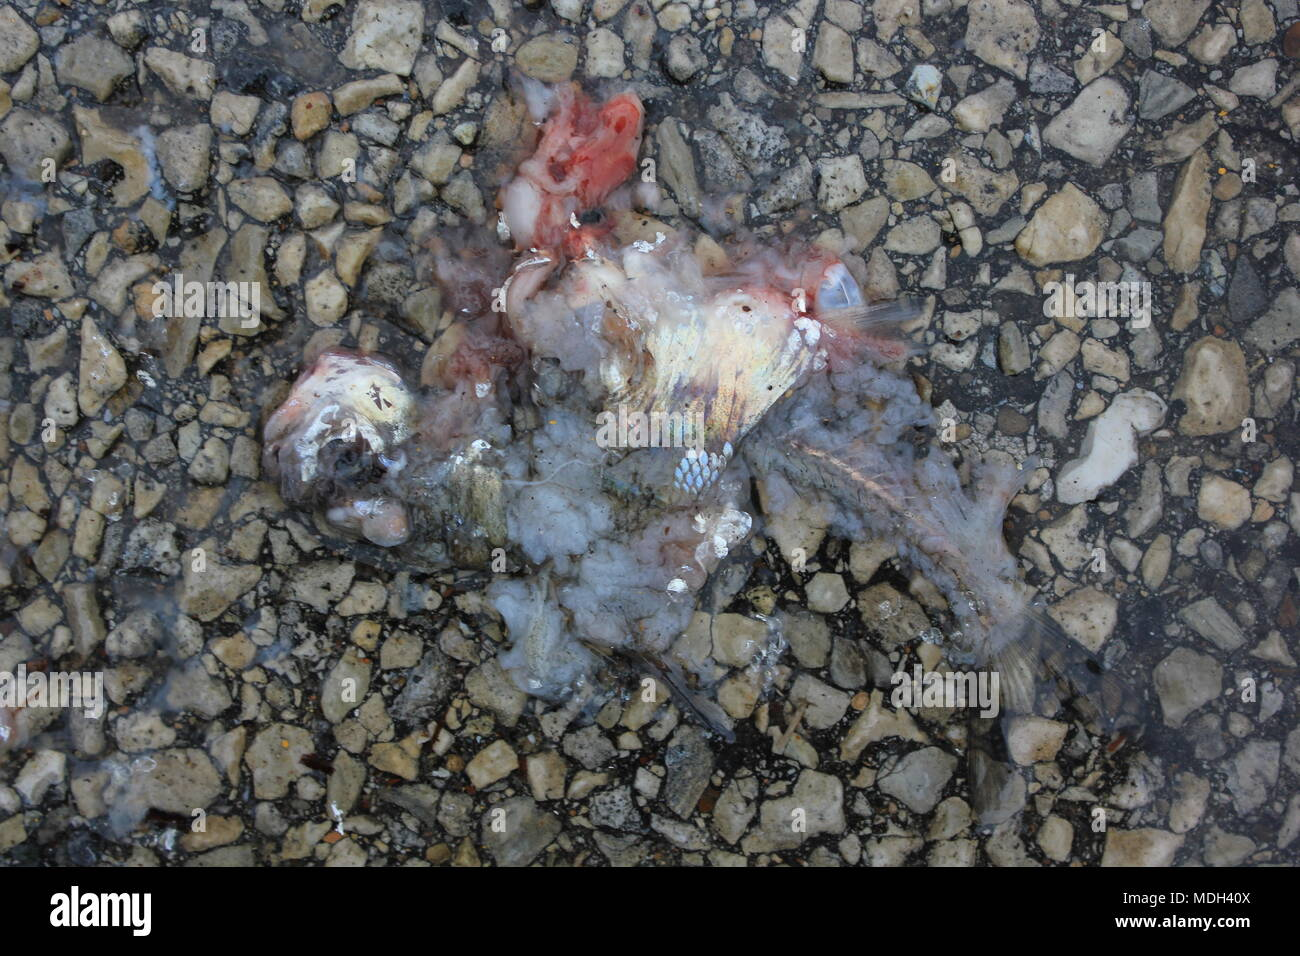 Dead fish laying in the Wal-Mart parking lot. - Stock Image